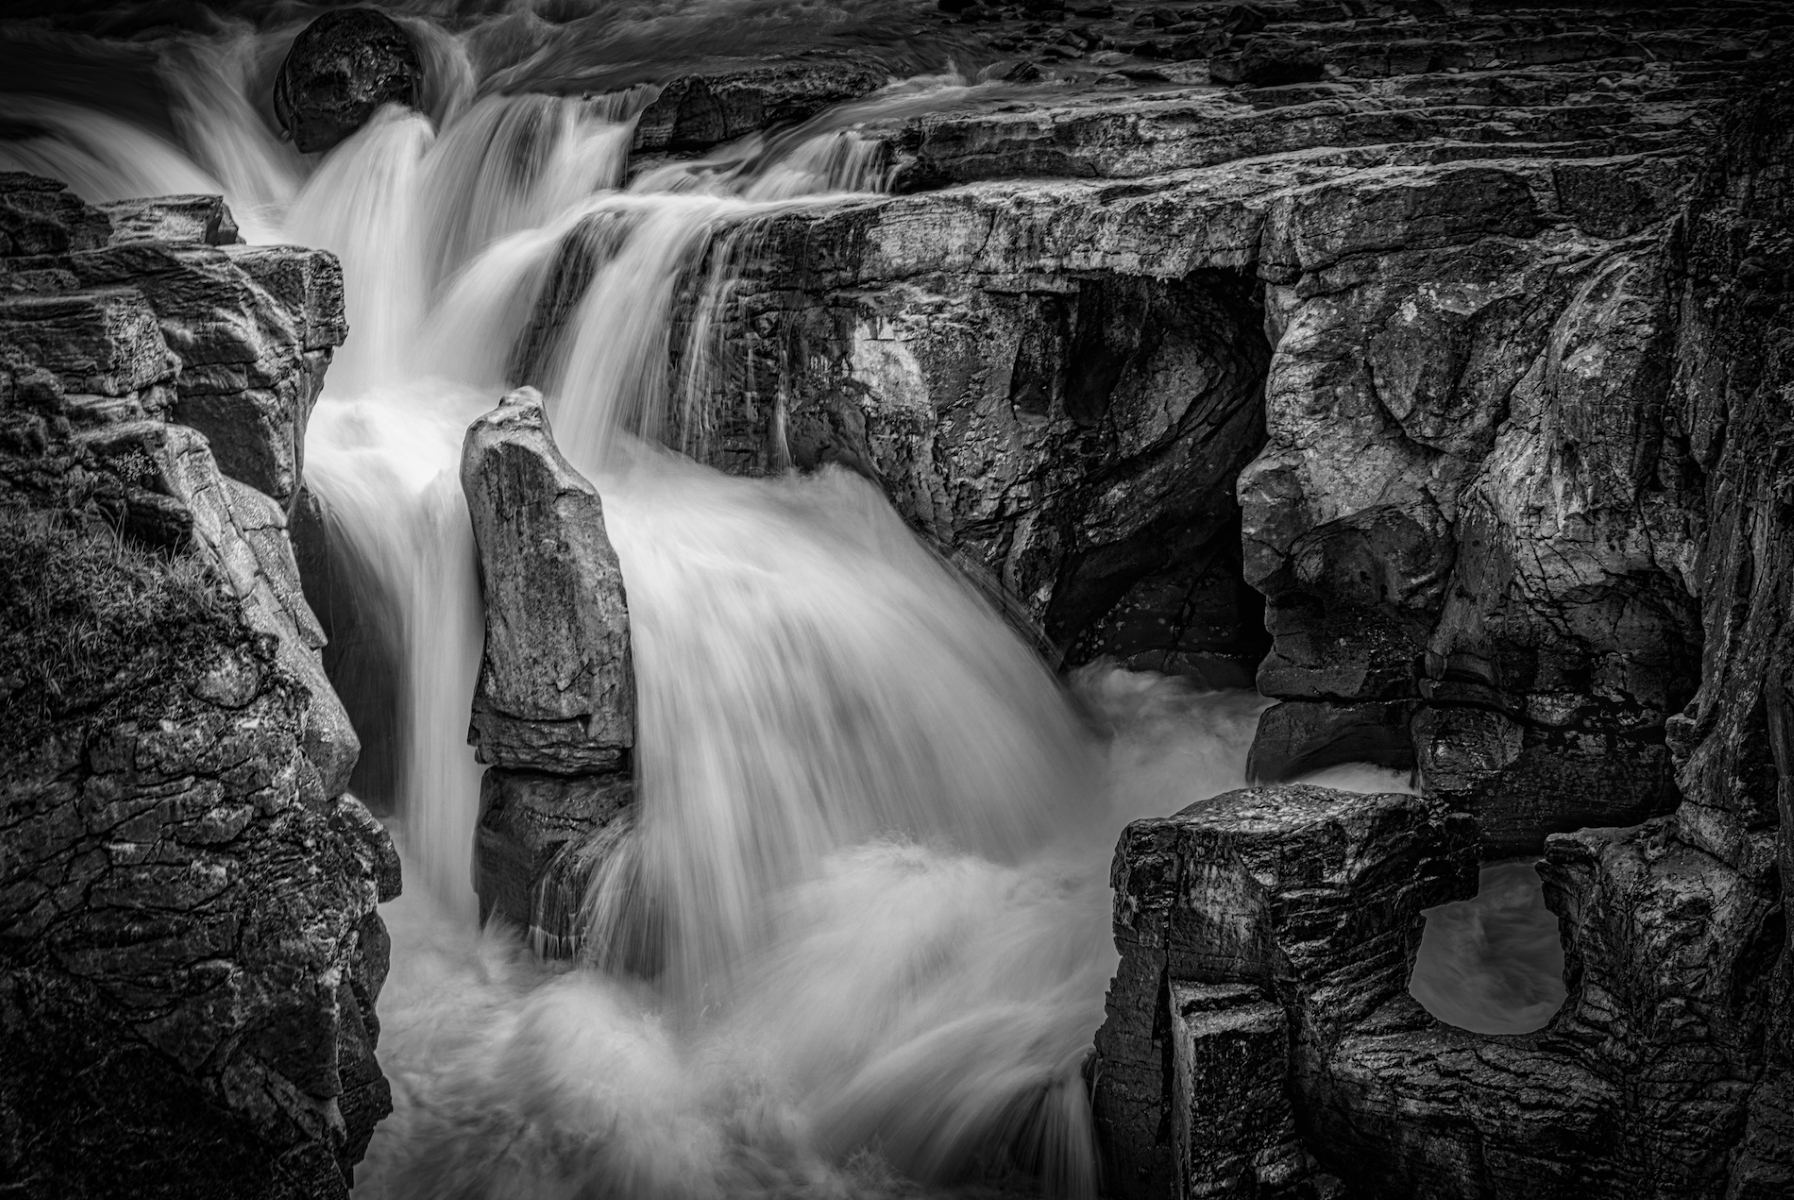 'Sunwapta Falls' (MA 1 Place) by William Stekelberg - LV